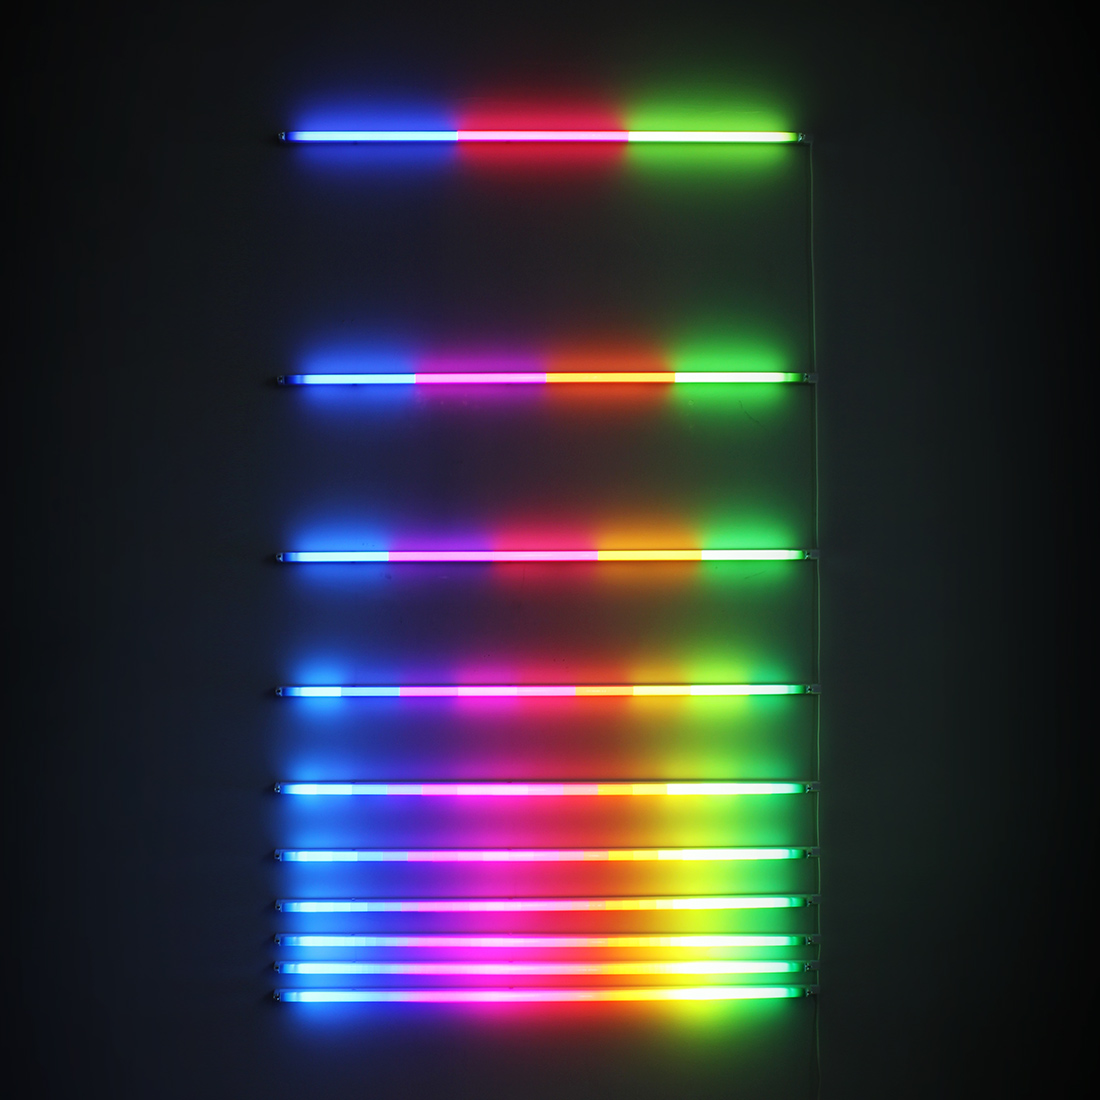 Increasing Resolution (2012), fluorescent lights, filters, 120 x 190 cm